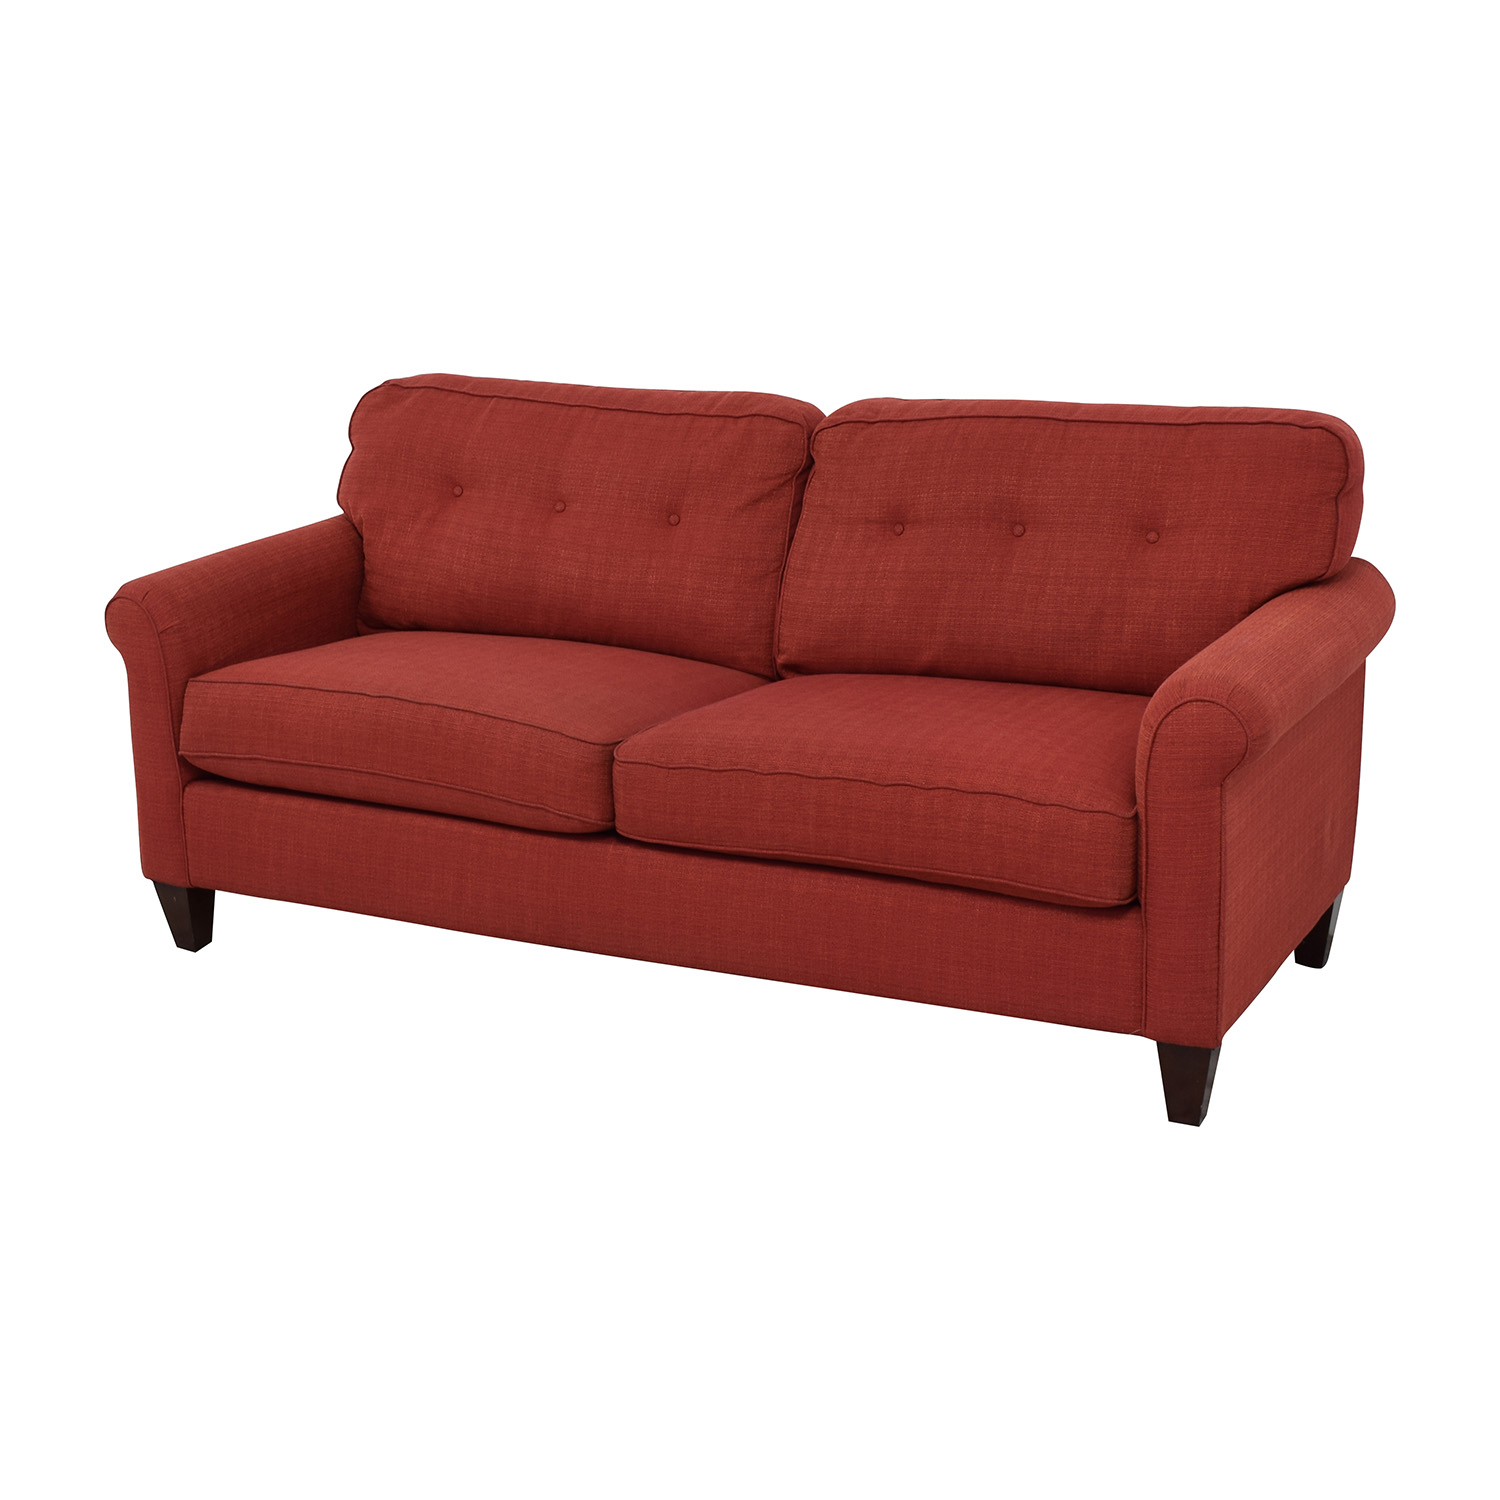 80% OFF La Z Boy La Z Boy Laurel Premier Red Sofa Sofas